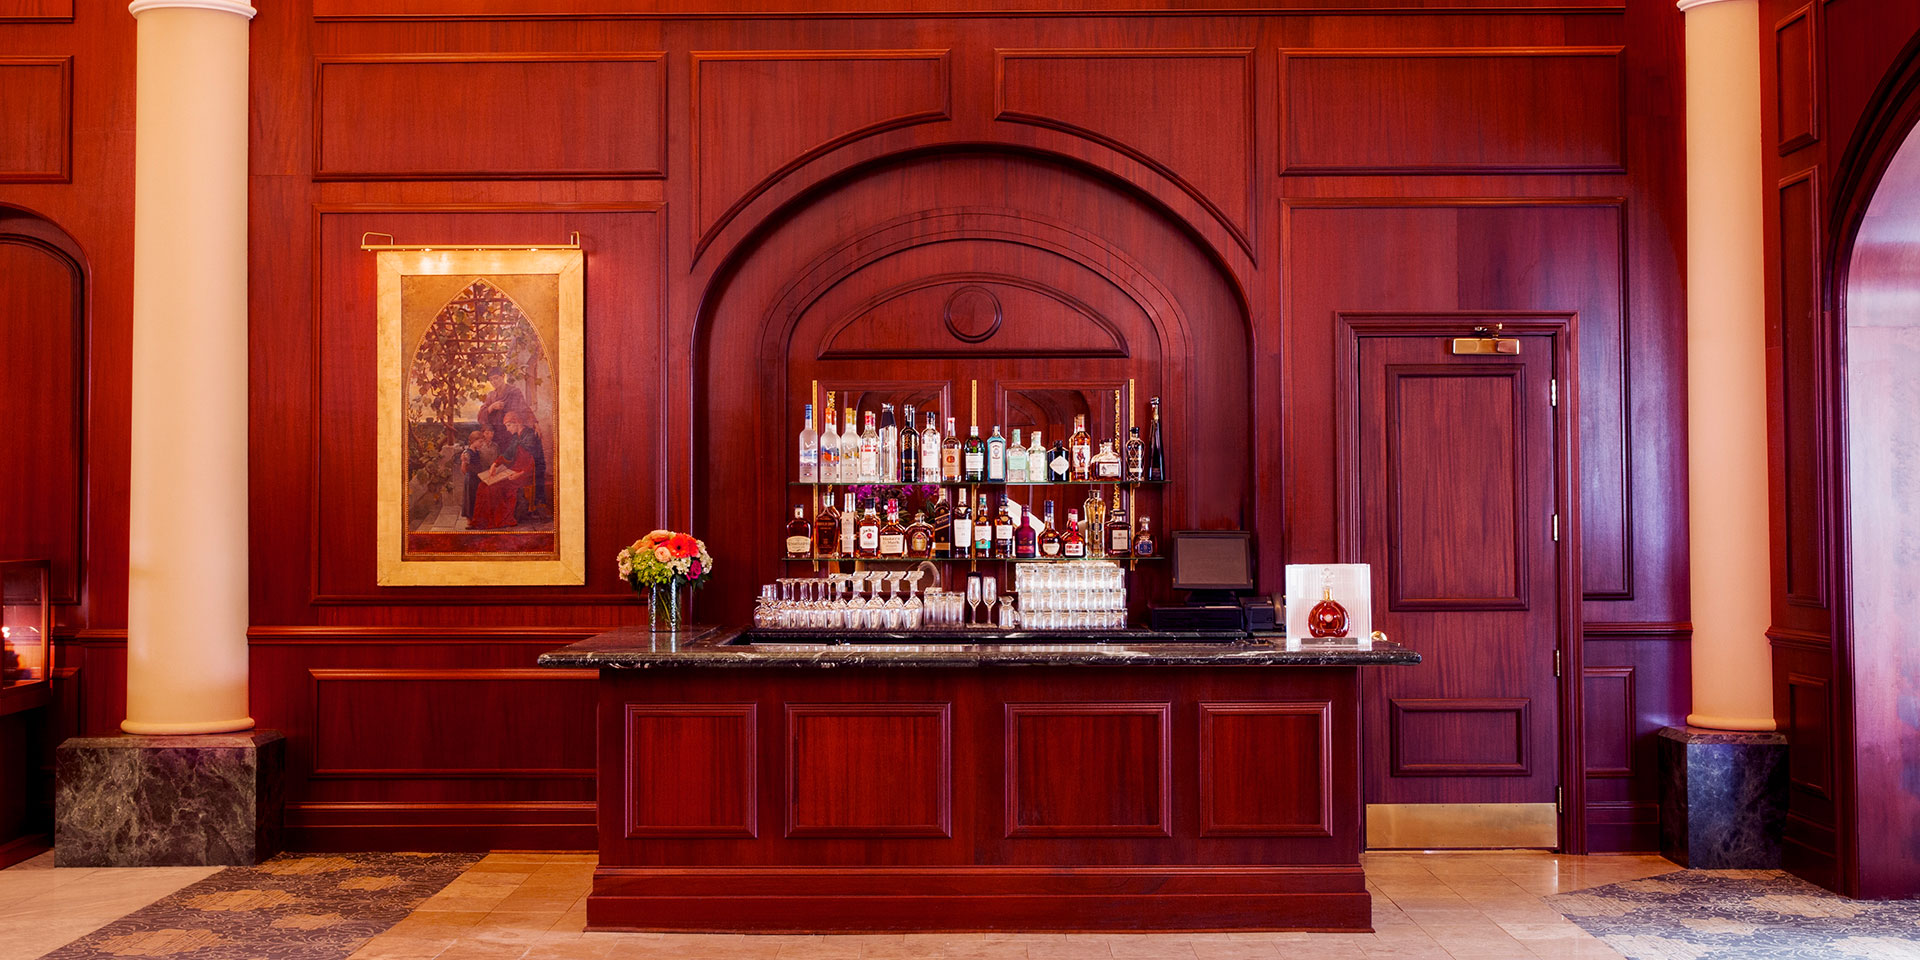 Fancy bar in front of wooden walls